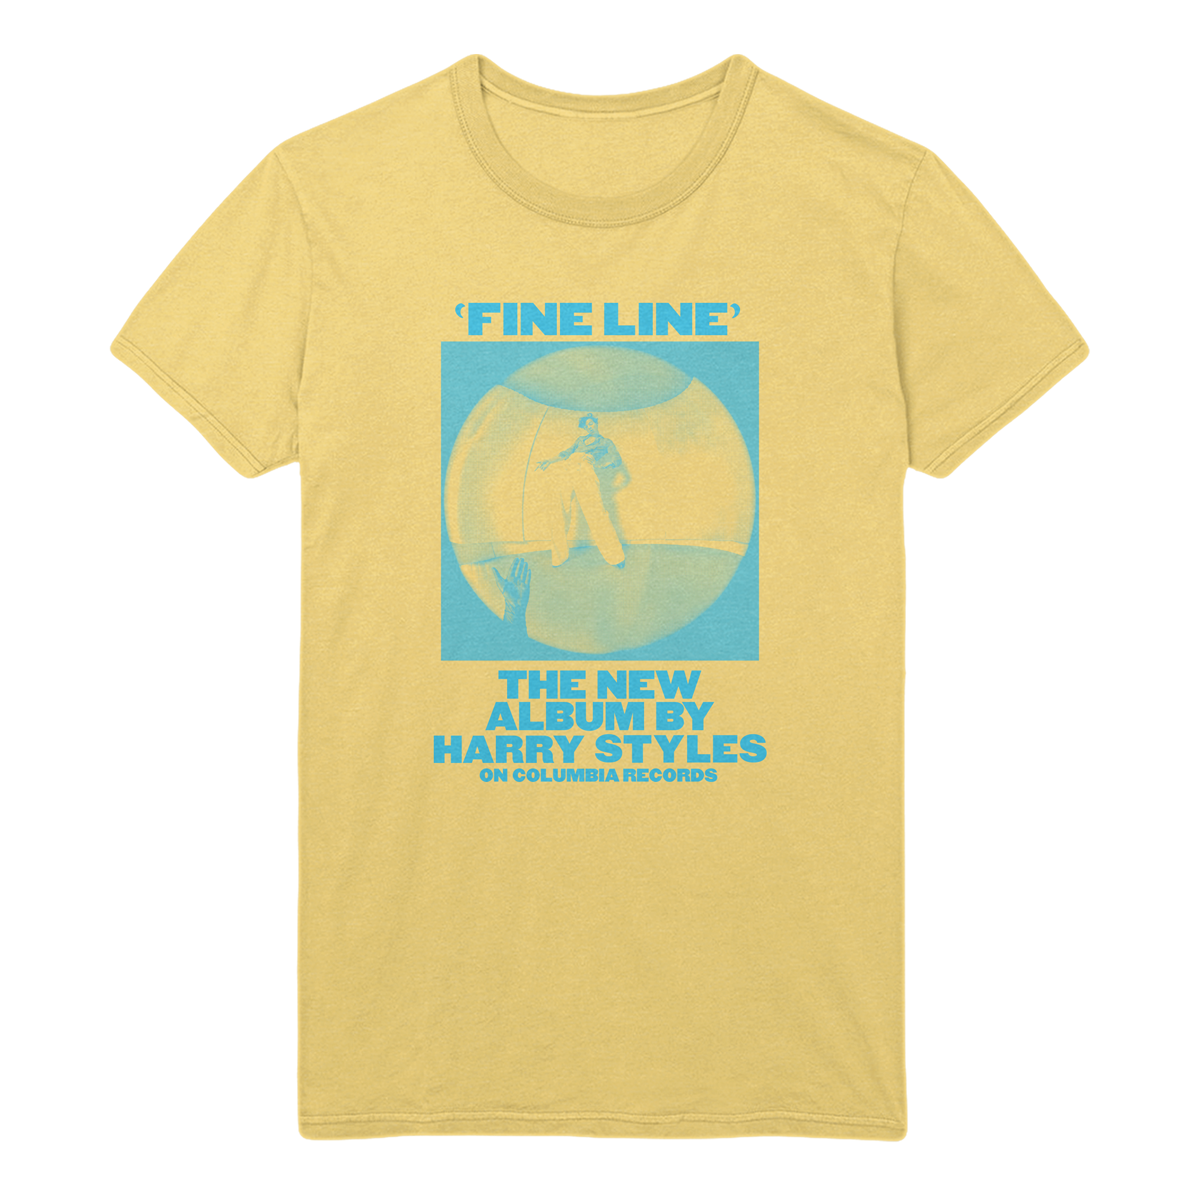 Yellow Fine Line Vintage Promo Tee + Digital Download - Harry Styles EU